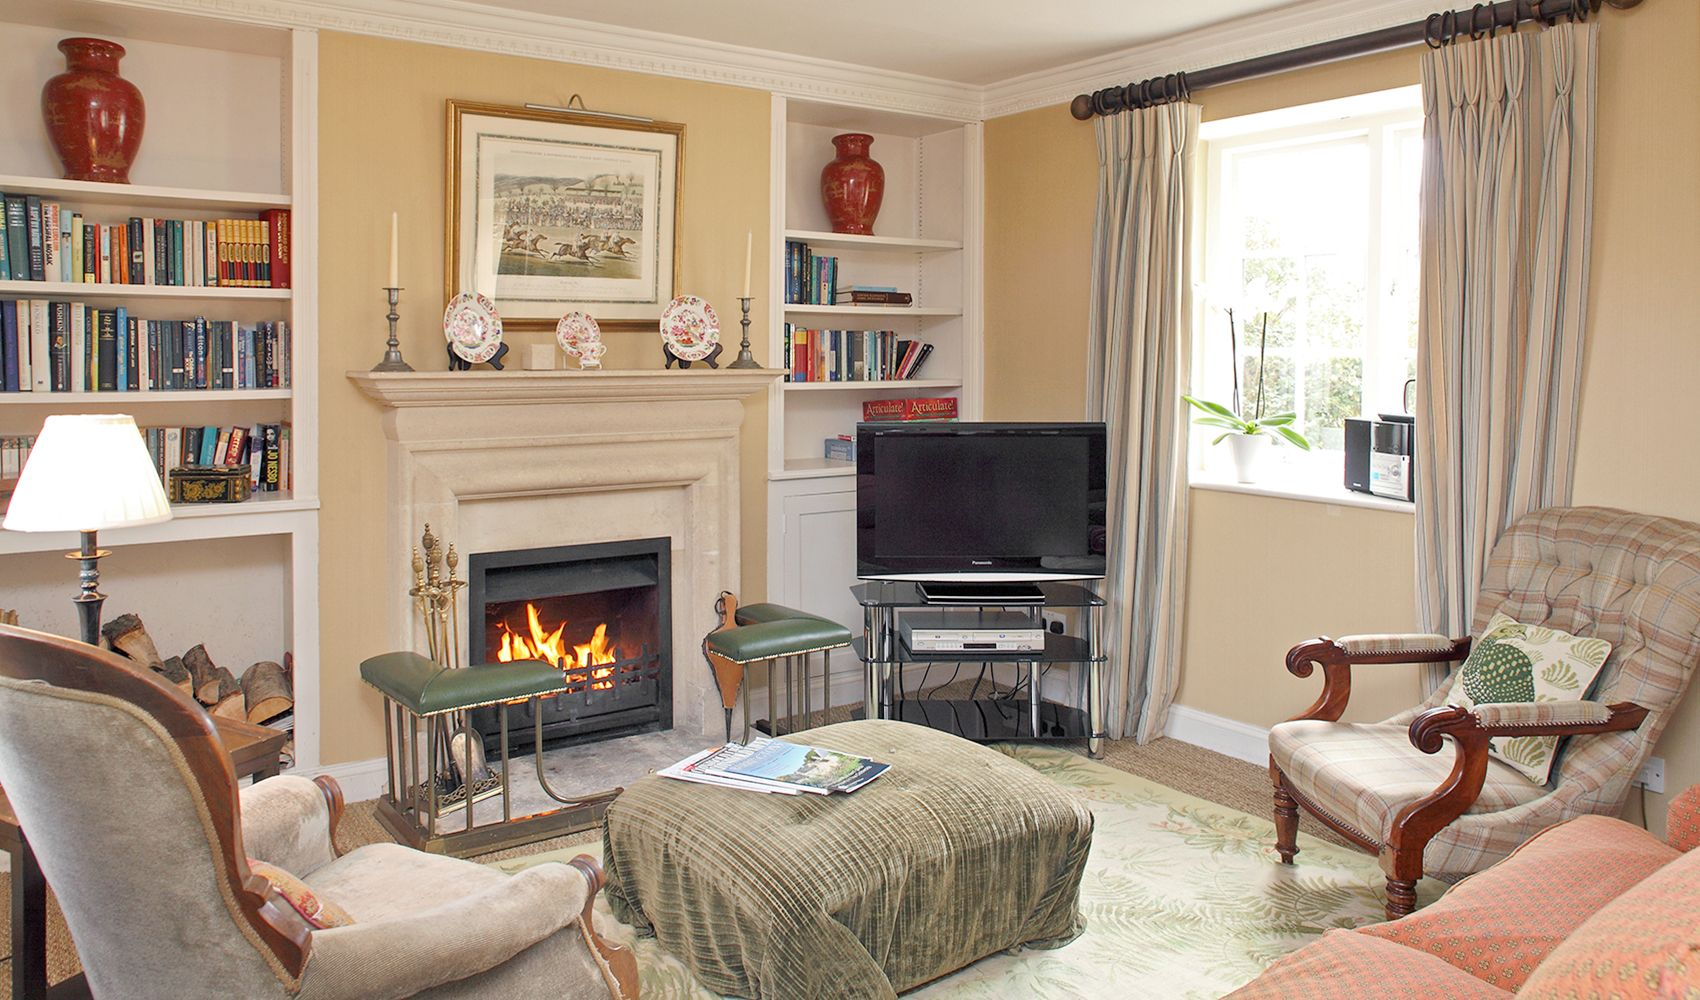 Ground floor: Cosy drawing room with open fire in a stone fireplace